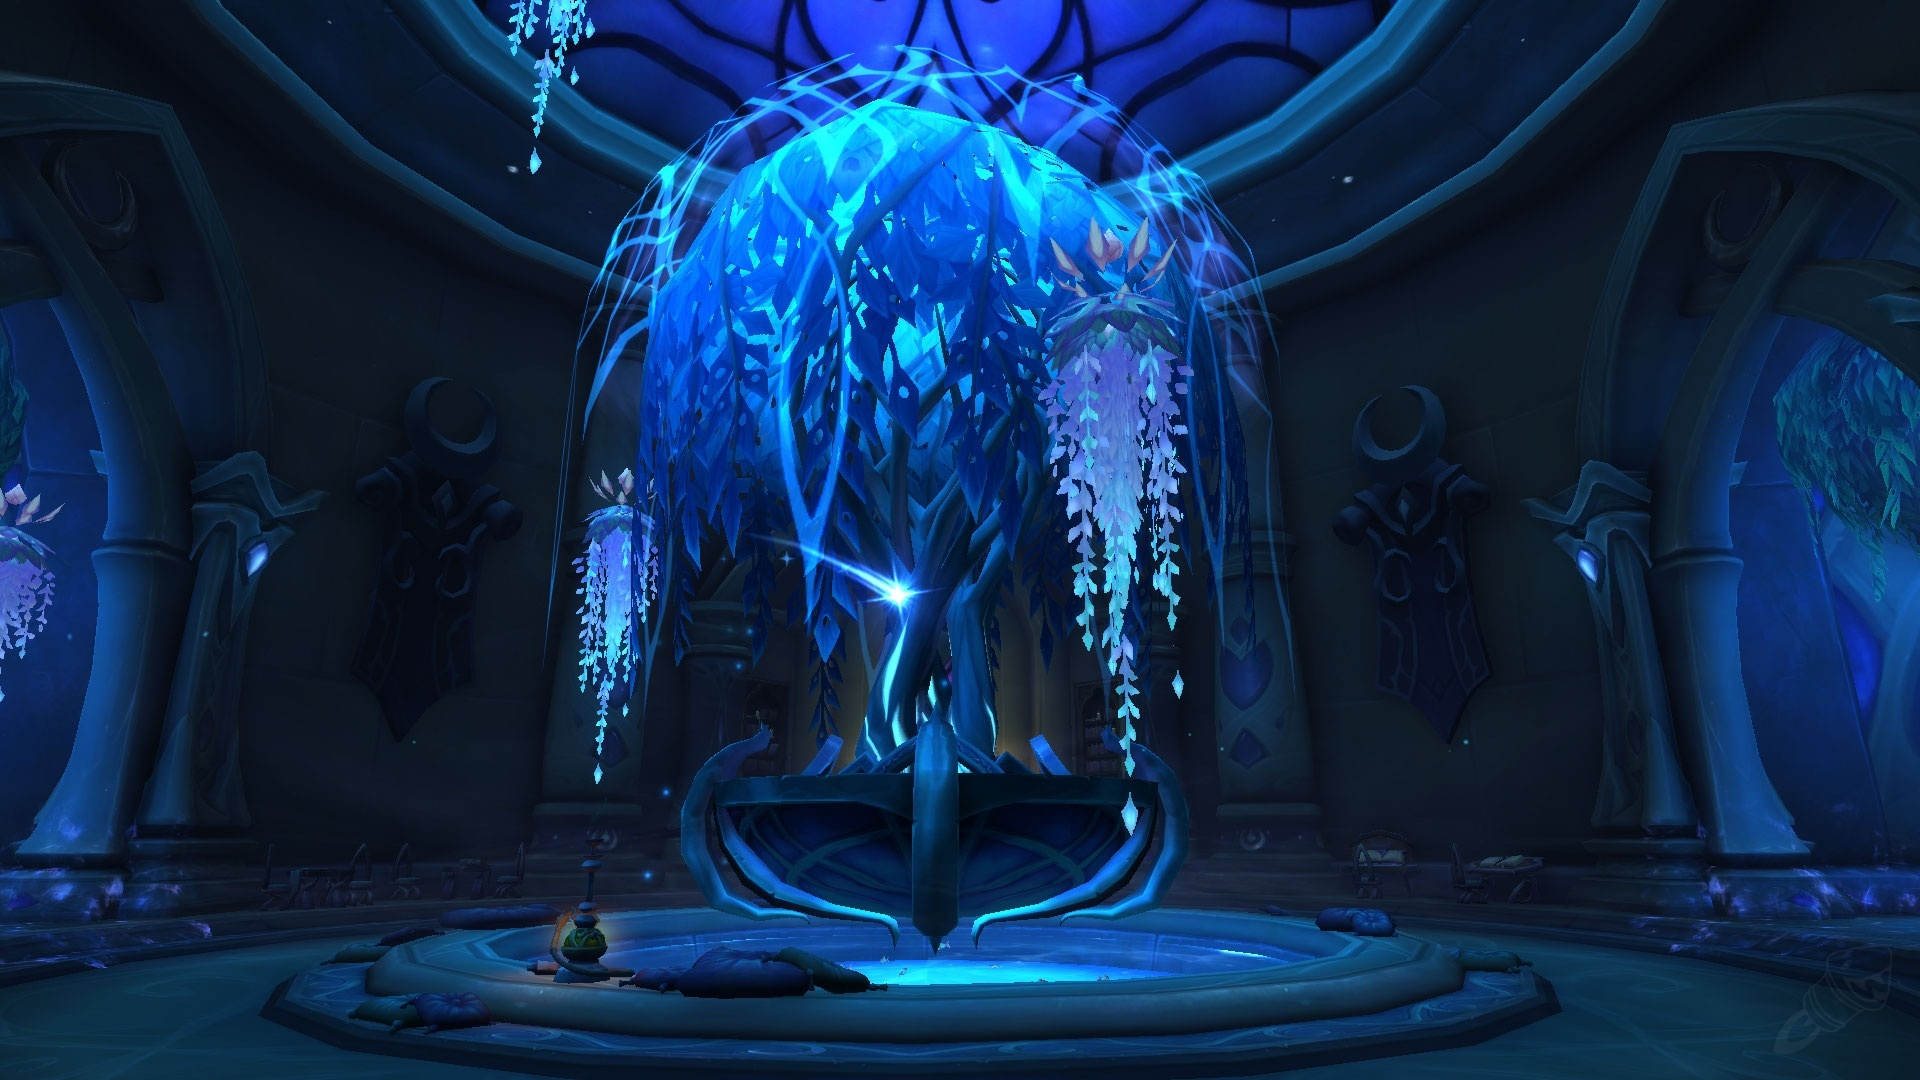 WoW Tomb of Sargeras Hall with tree